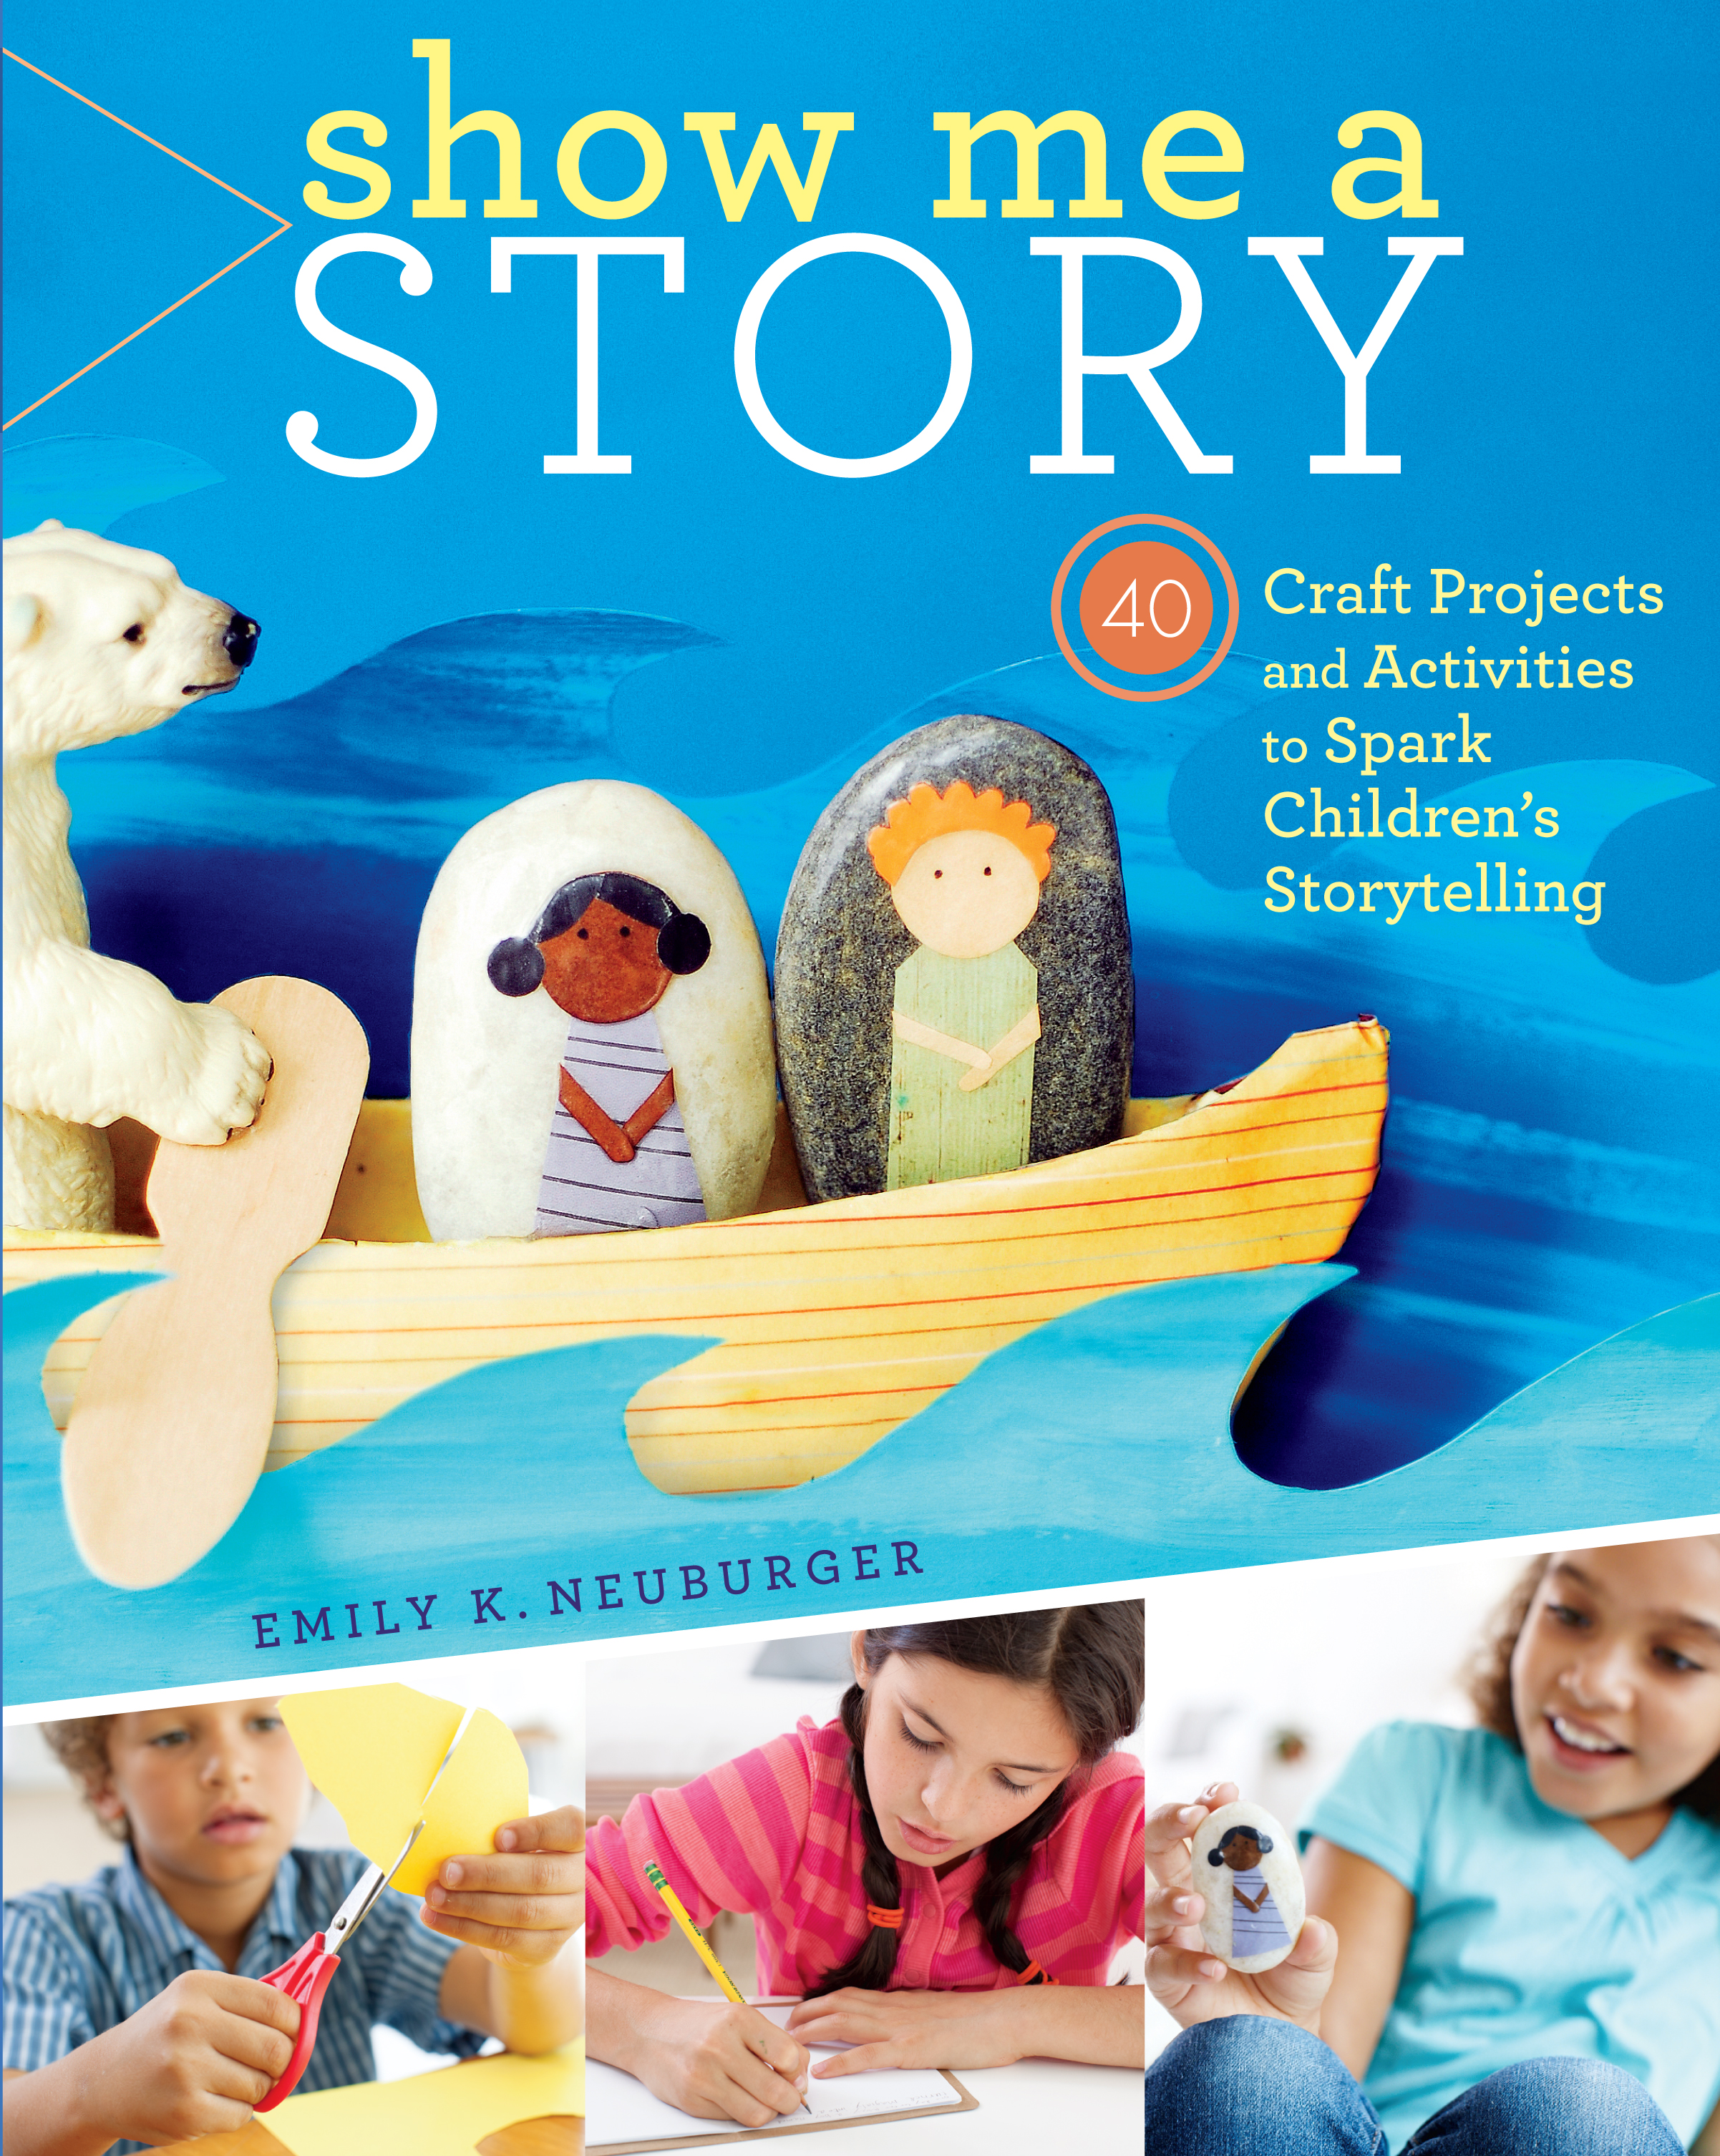 Show Me a Story 40 Craft Projects and Activities to Spark Children's Storytelling - Emily K. Neuburger